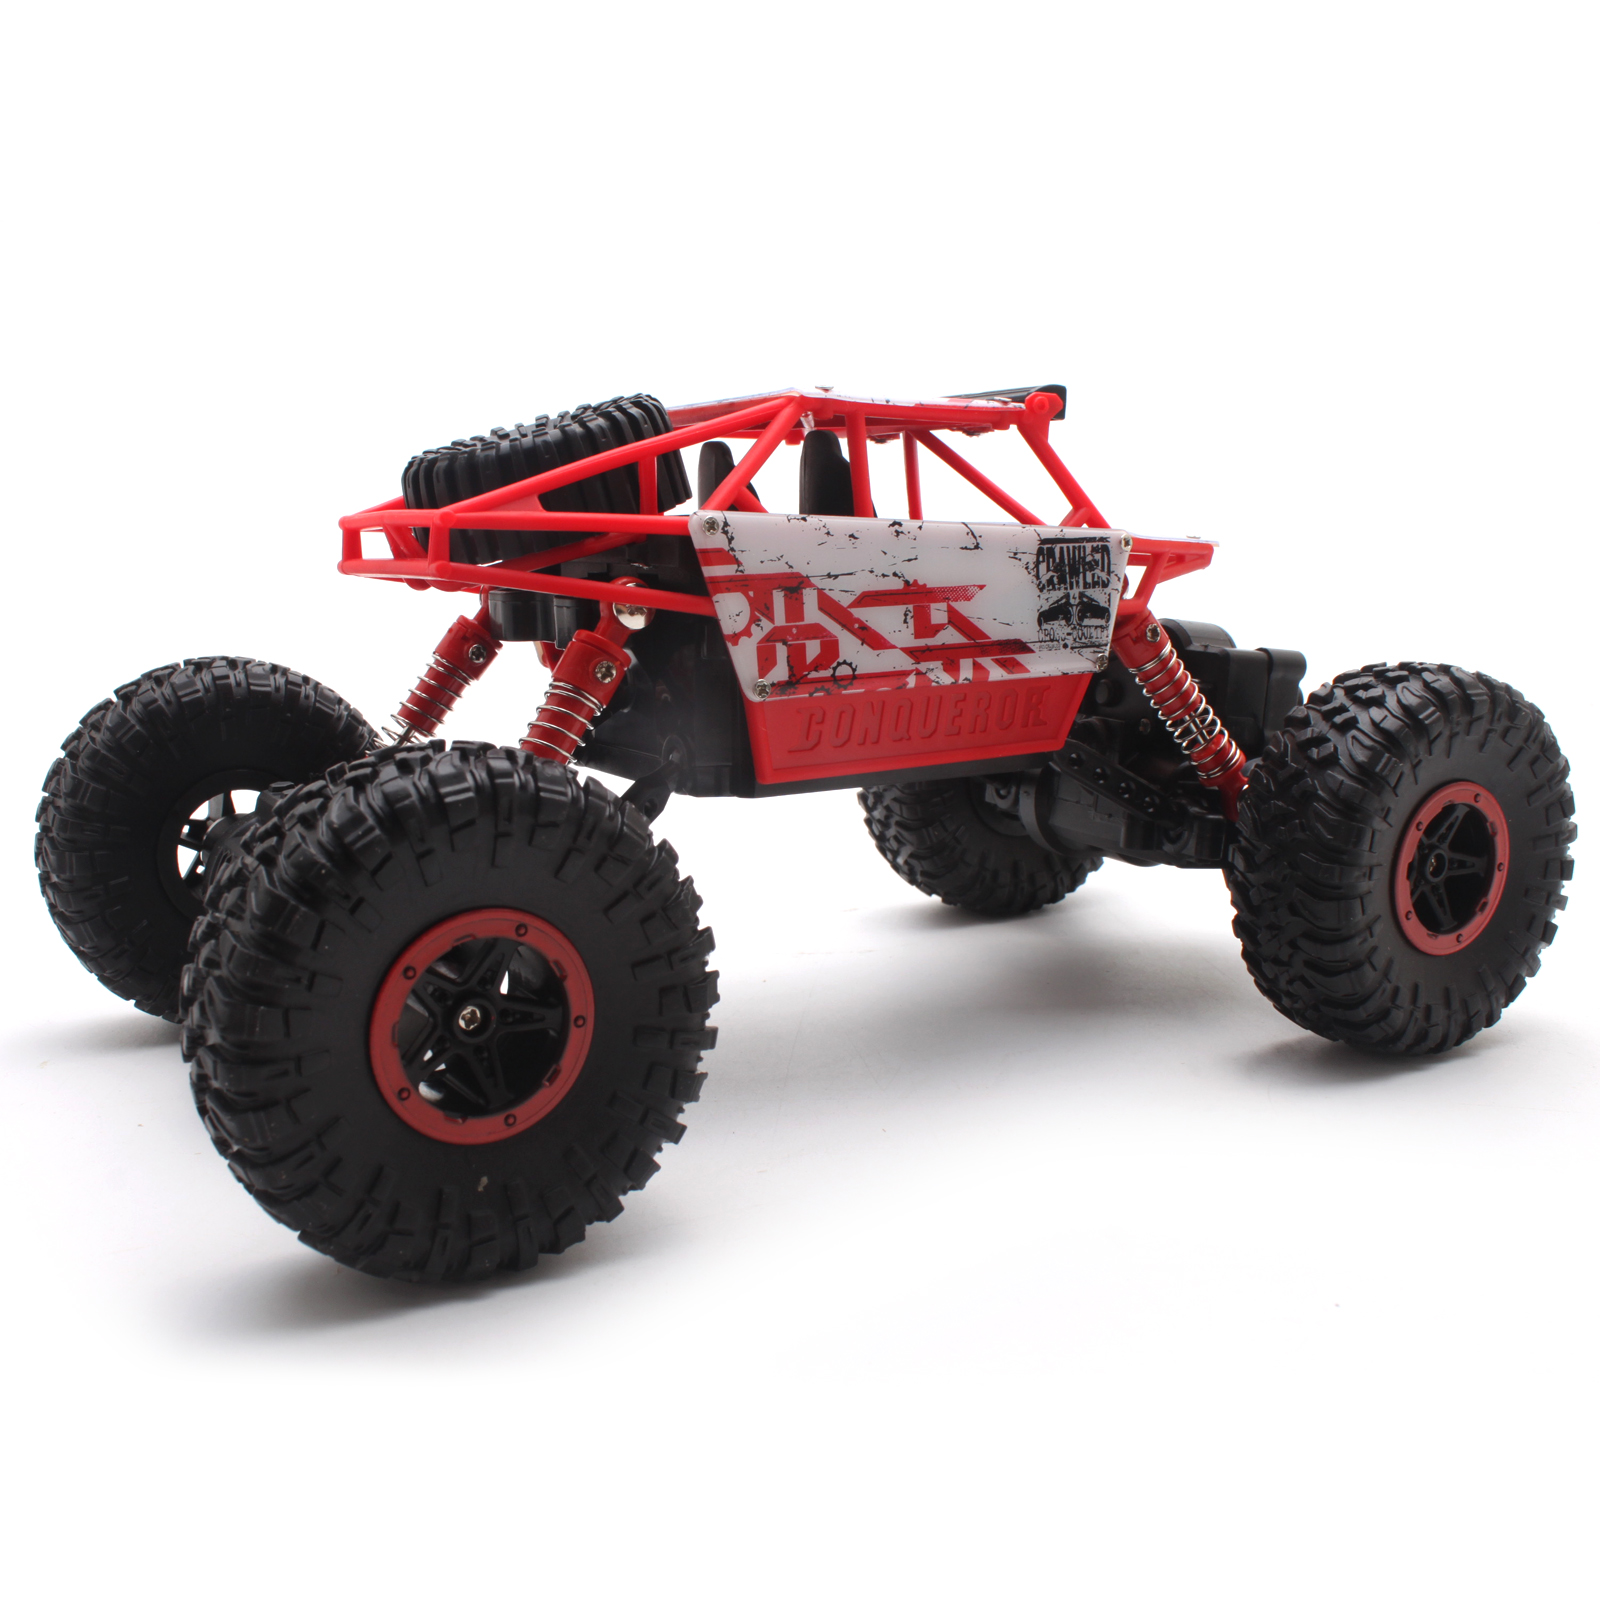 1 18 2 4GHZ 4WD Radio Remote Control f Road RC Car ATV Buggy